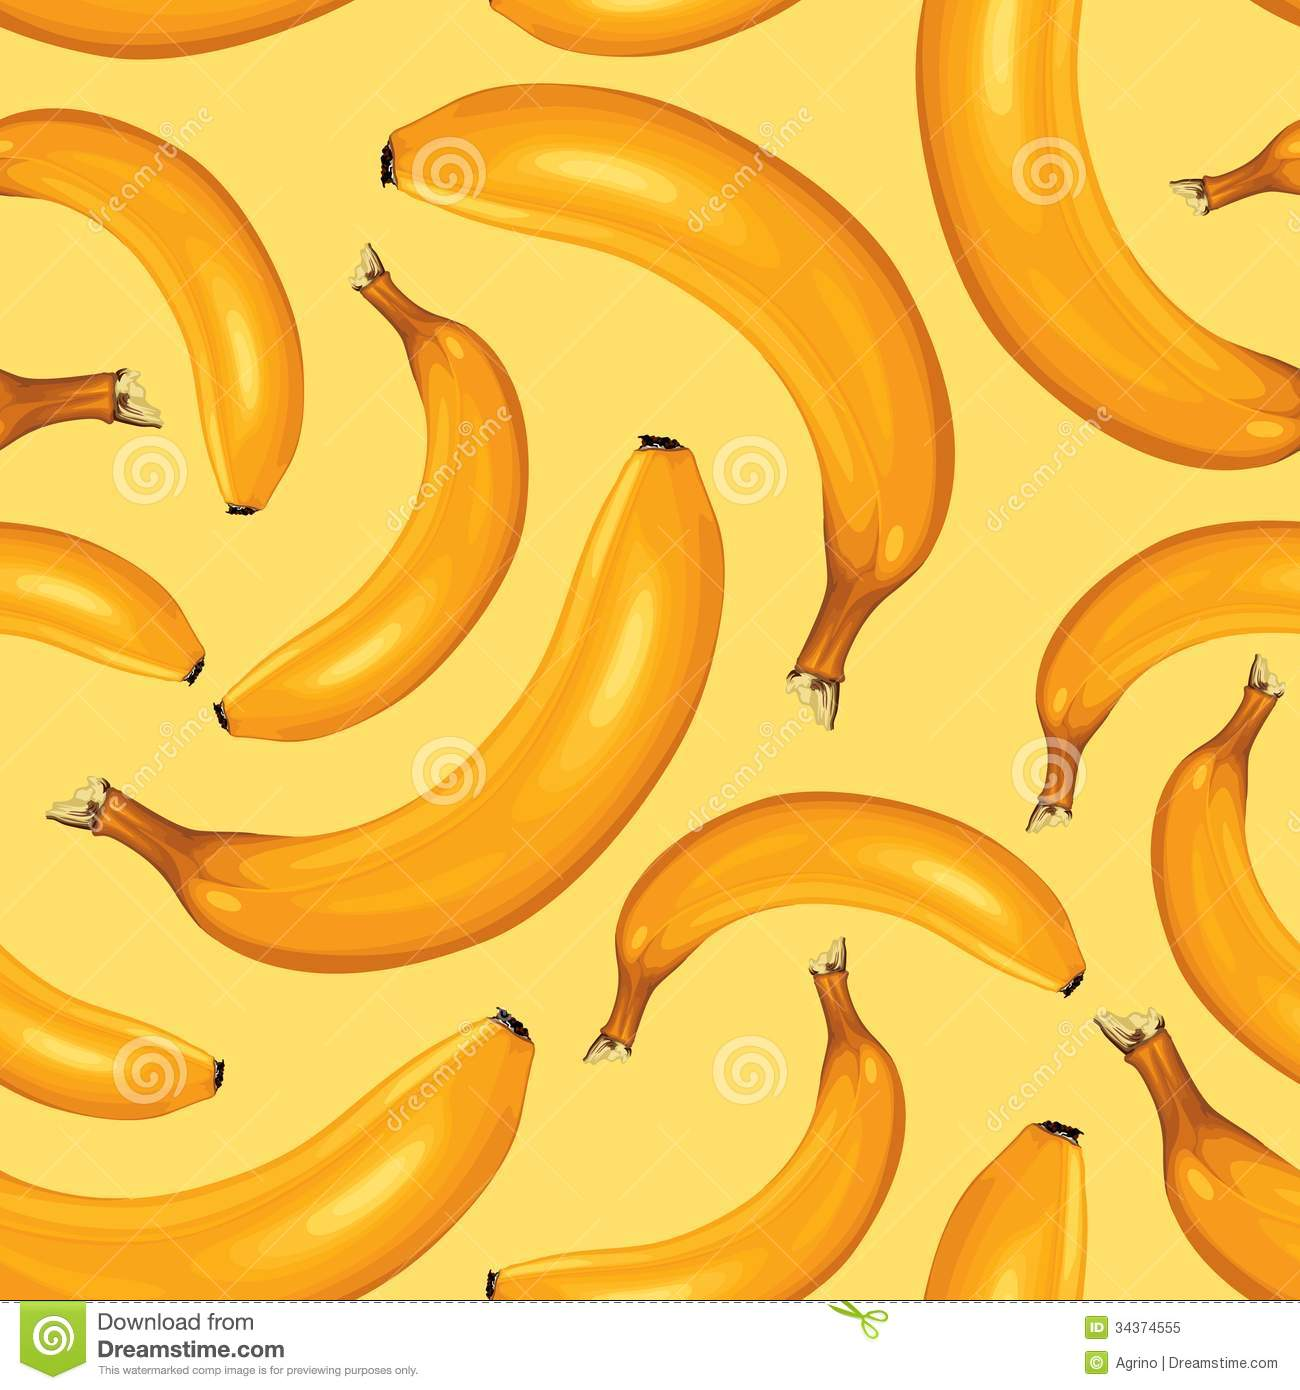 Bananas Seamless Pattern Royalty Free Stock Photo - Image: 34374555